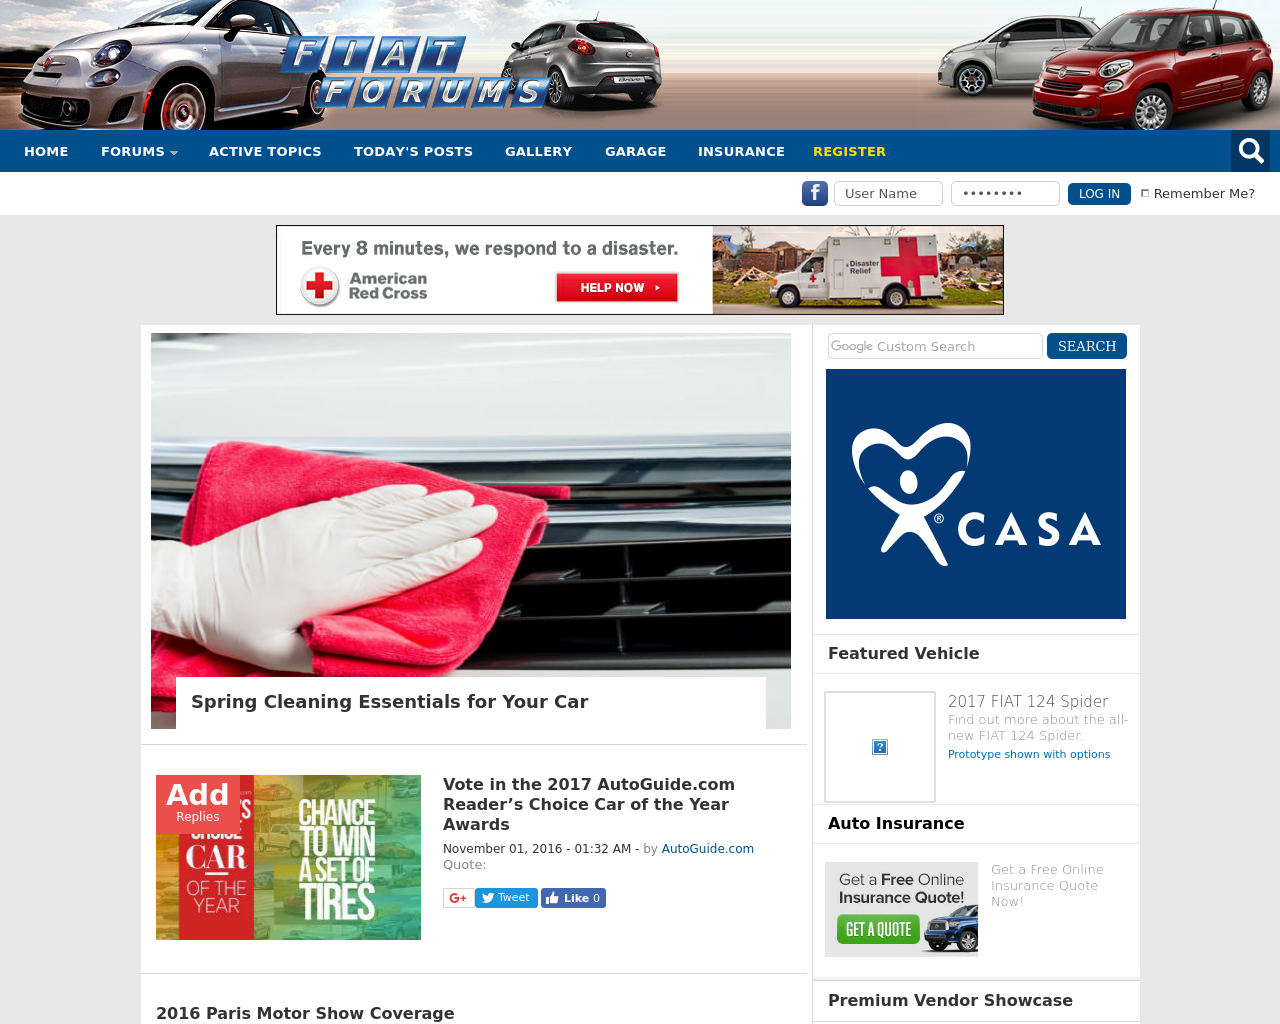 Fiat-Forums-Advertising-Reviews-Pricing